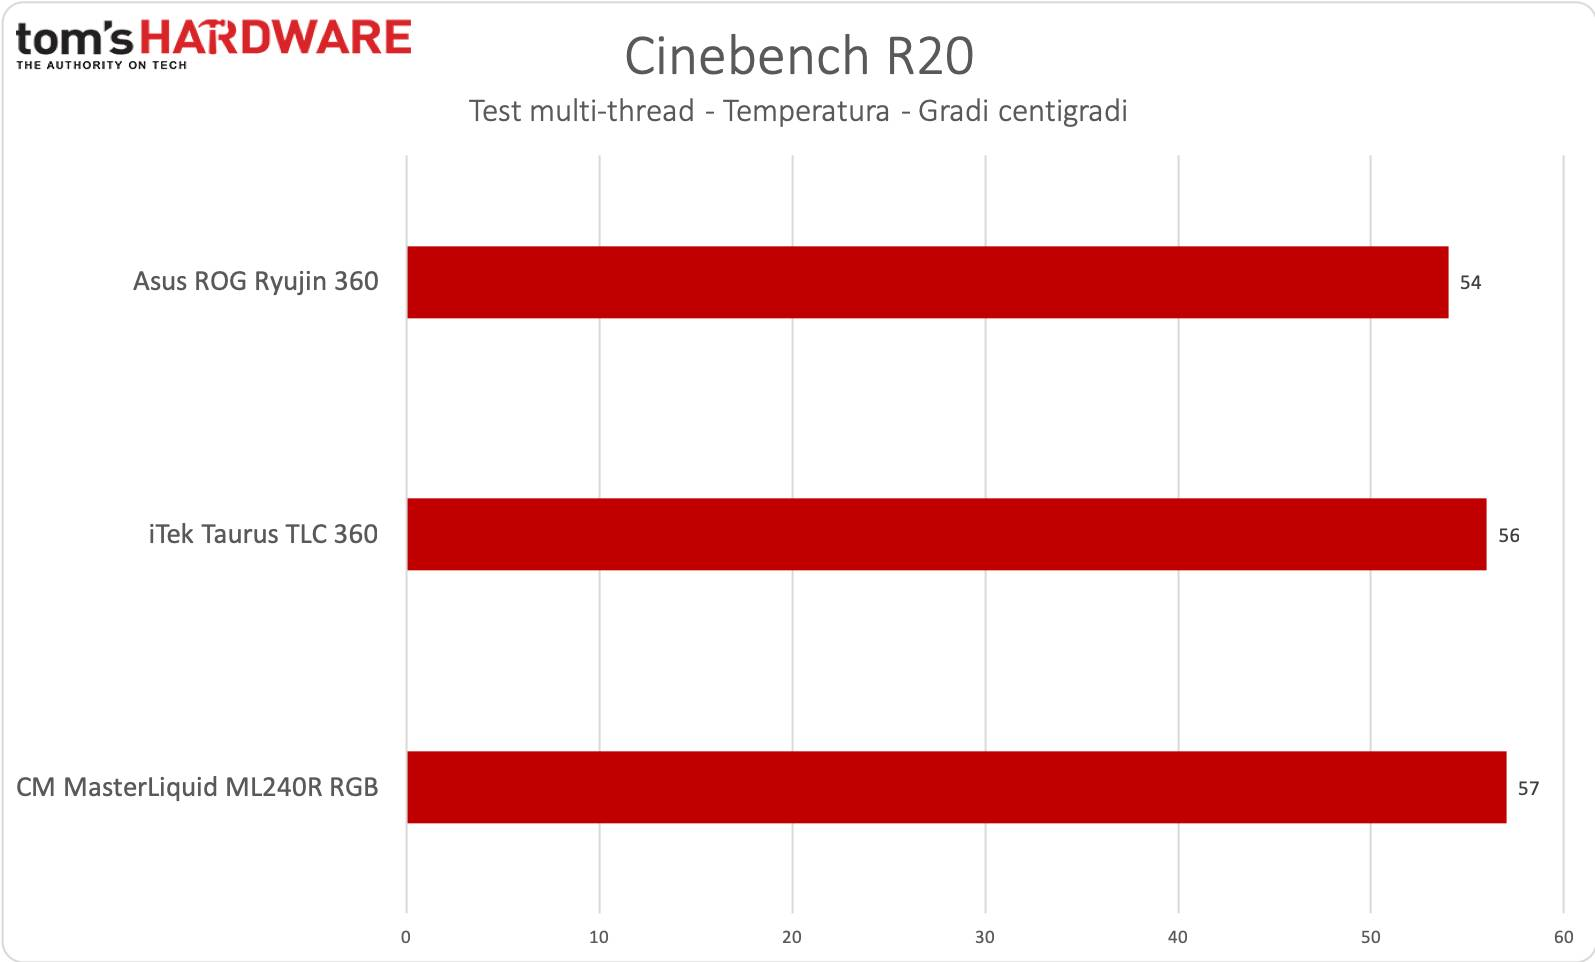 iTek Taurus 360 - Cinebench R20